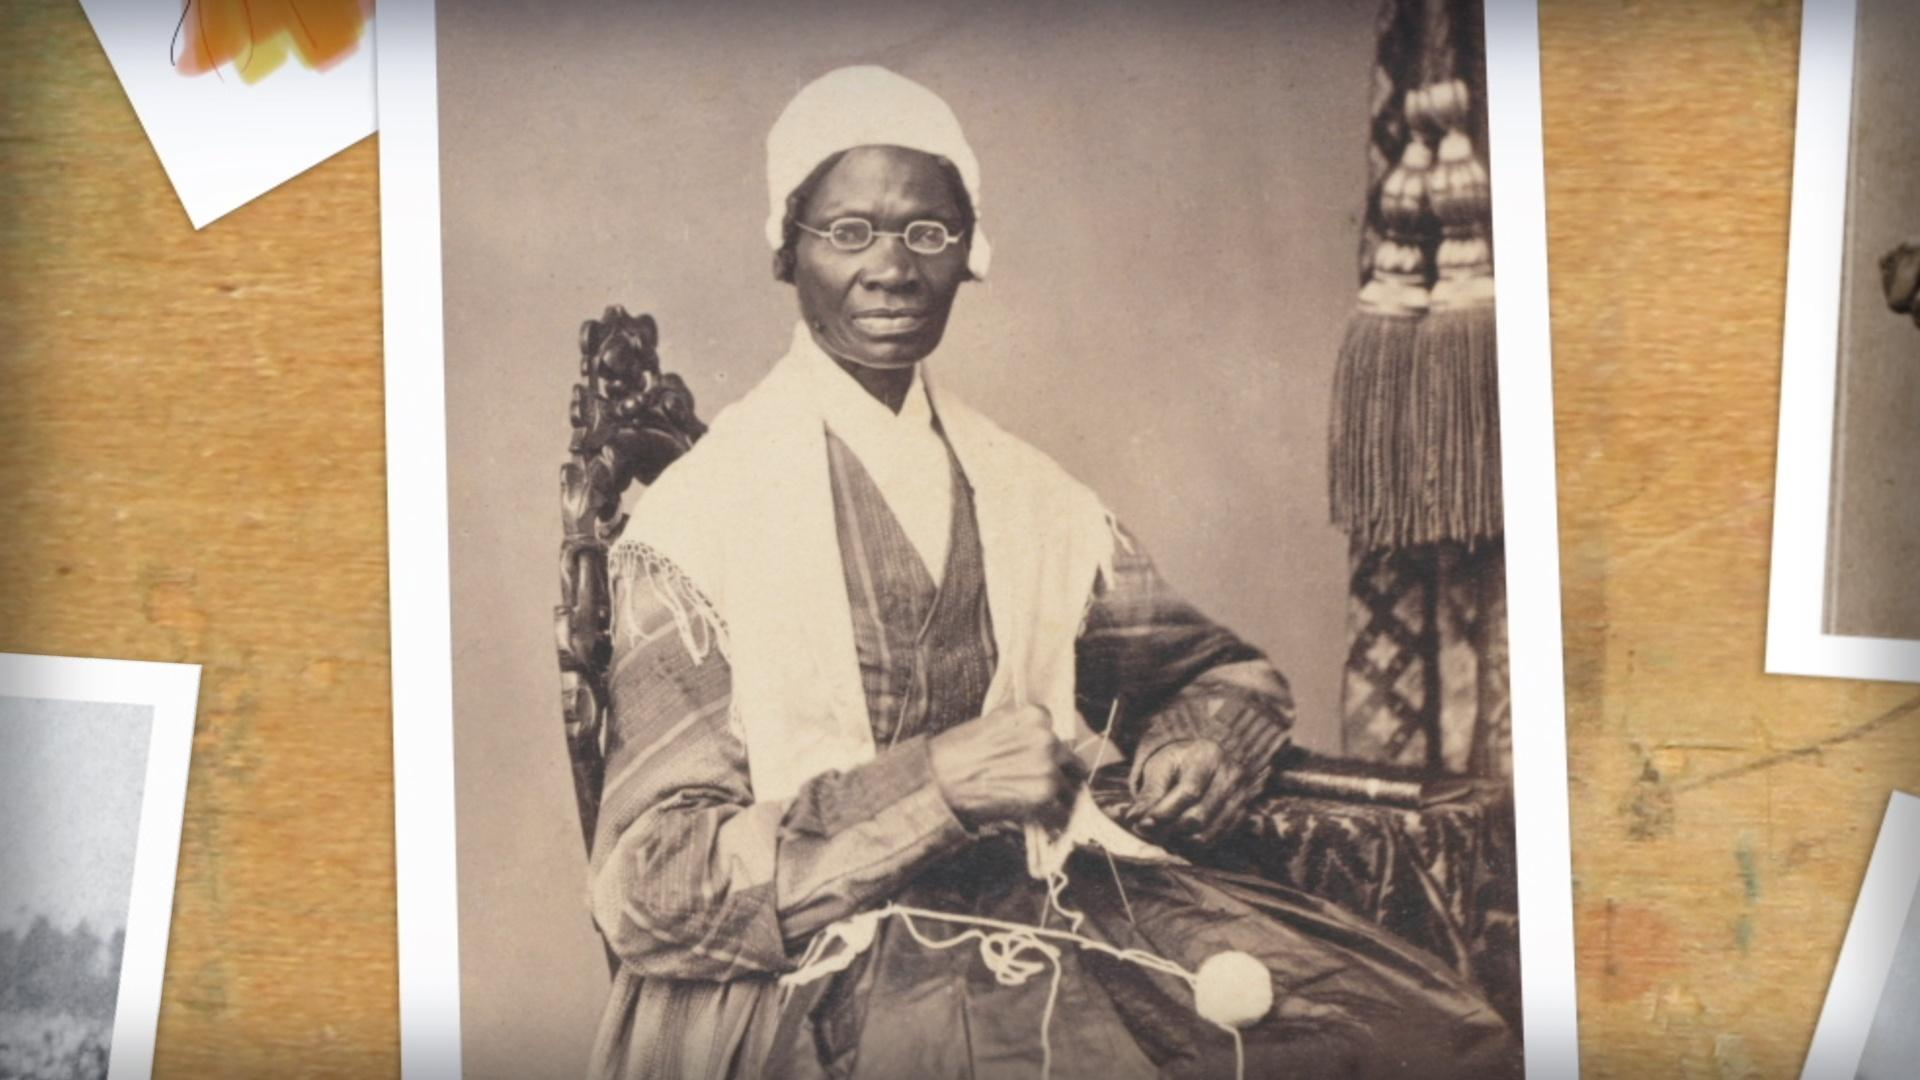 THE LIFE OF SOJOURNER TRUTH free essay, term paper